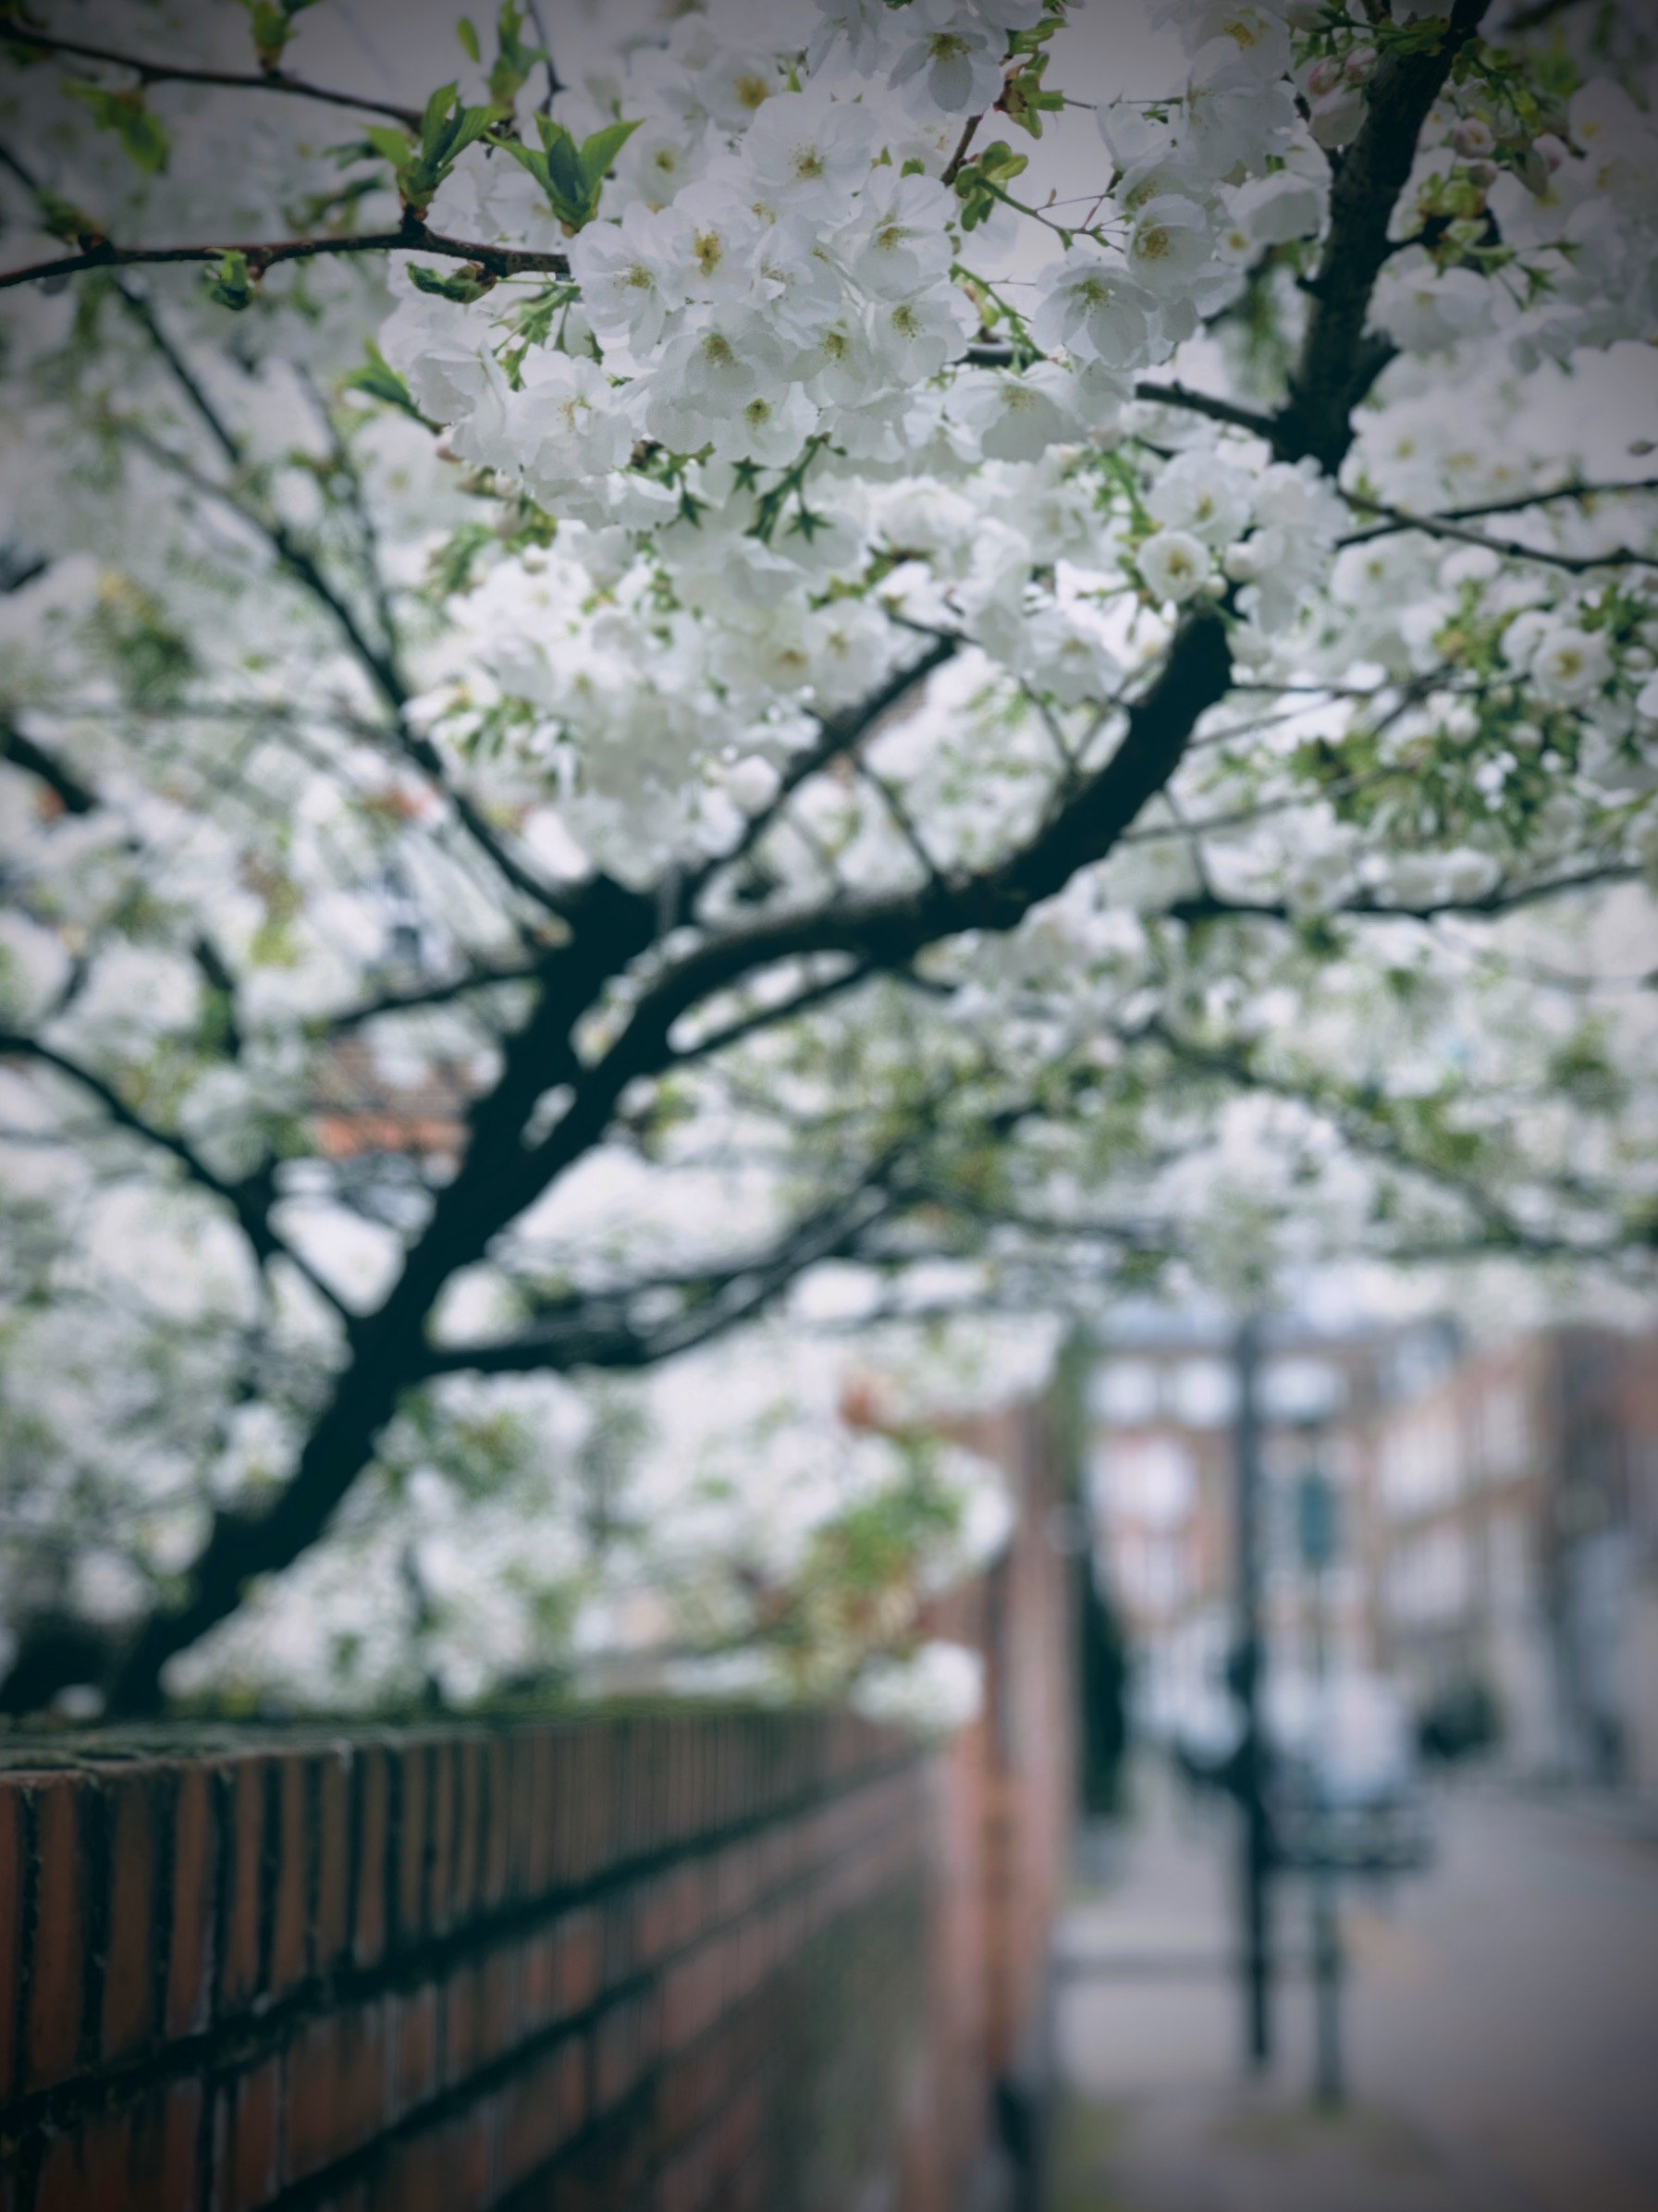 Spring Blossom in Shoreditch - iPhone XS vs Fuji X-T3